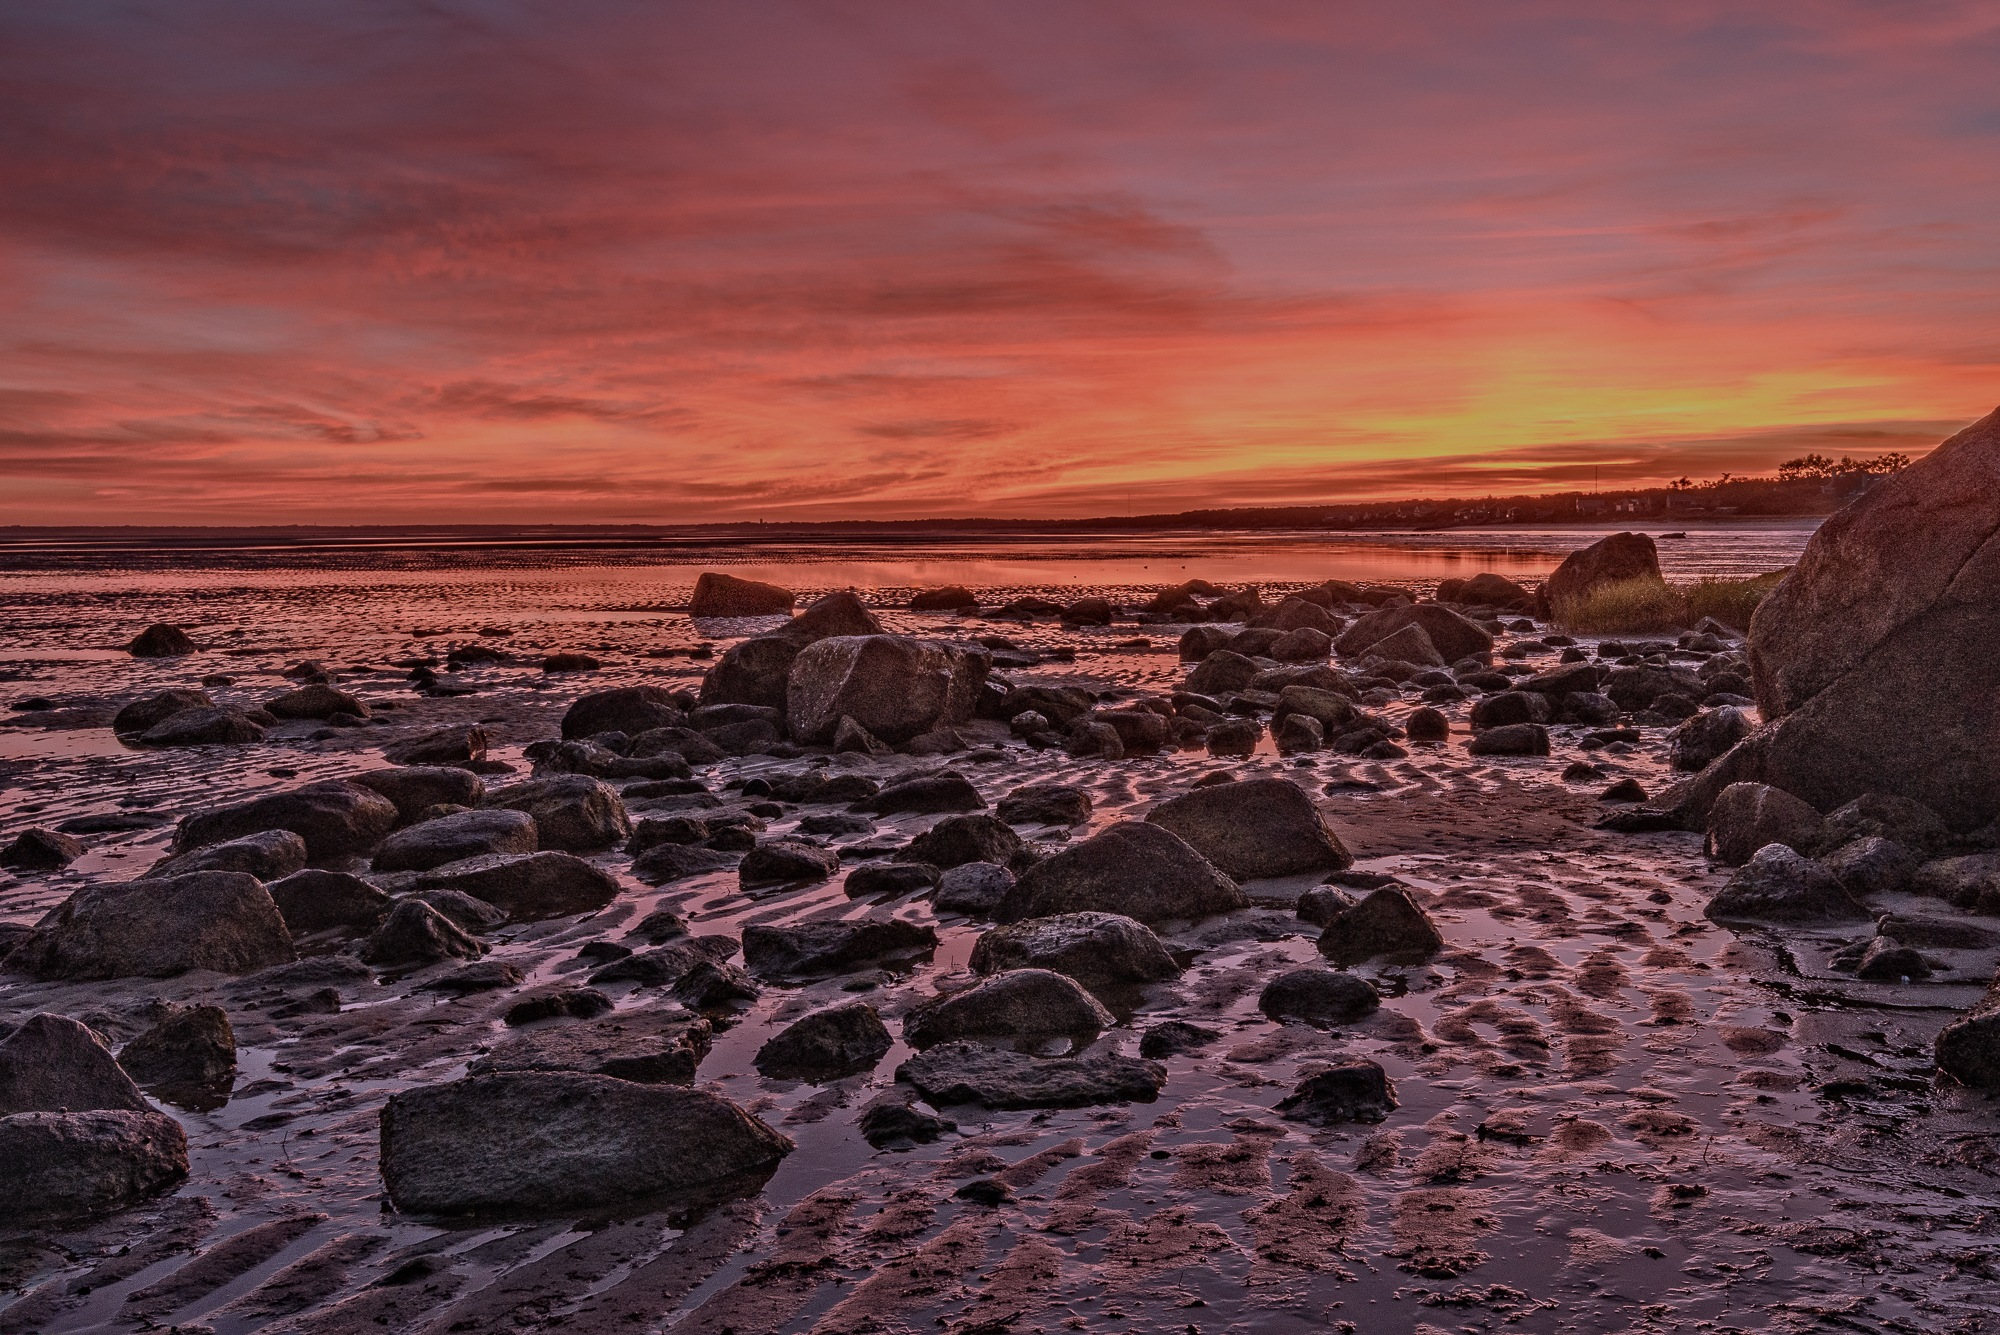 Sunrise over Cape Cod Bay at Low Tide by Steve Director